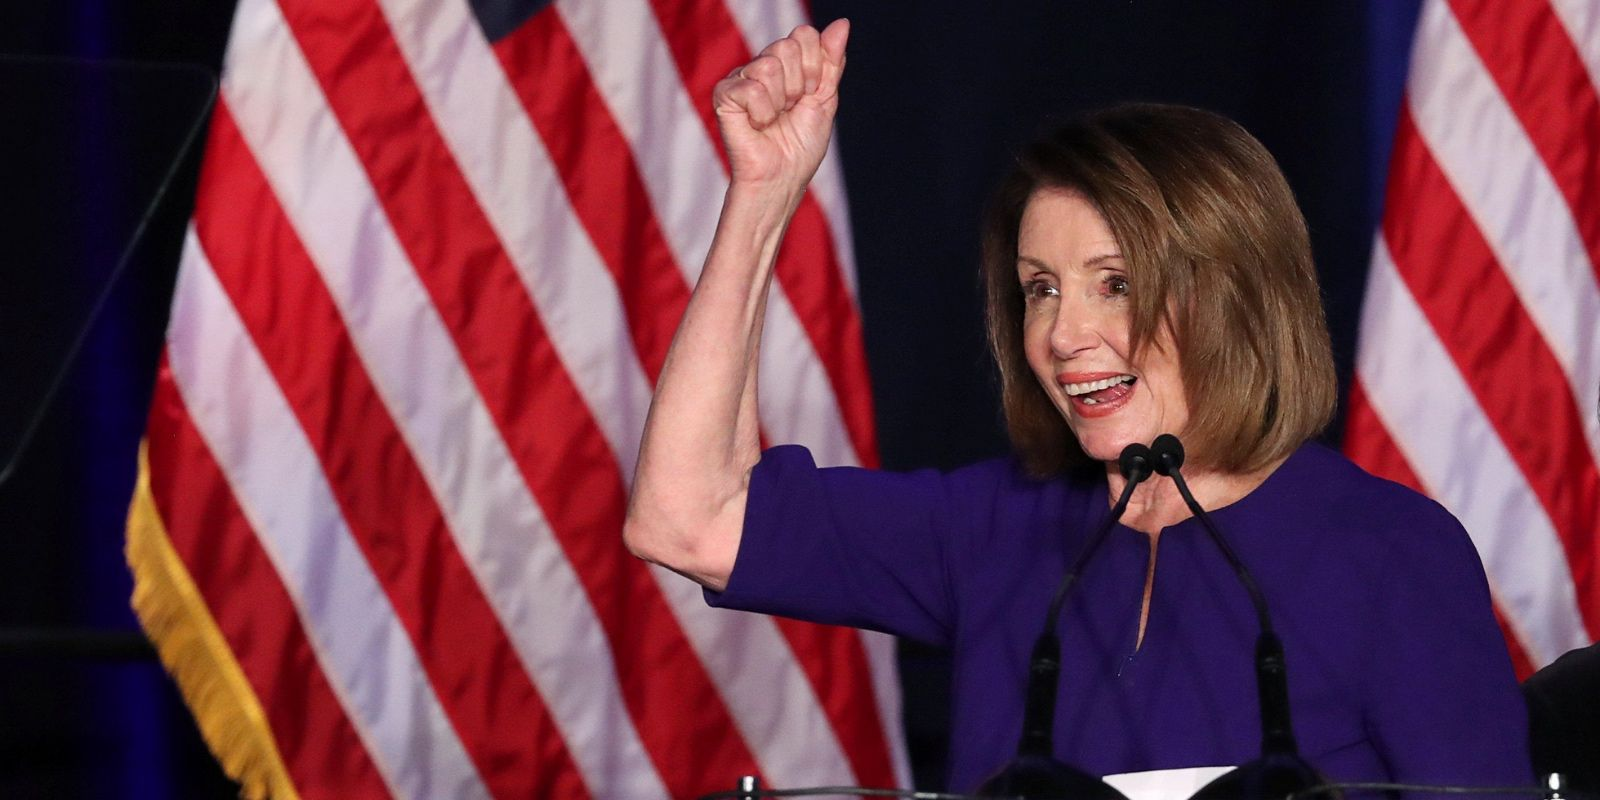 BREAKING: Nancy Pelosi calls for a '9/11-style commission' into Capitol riot